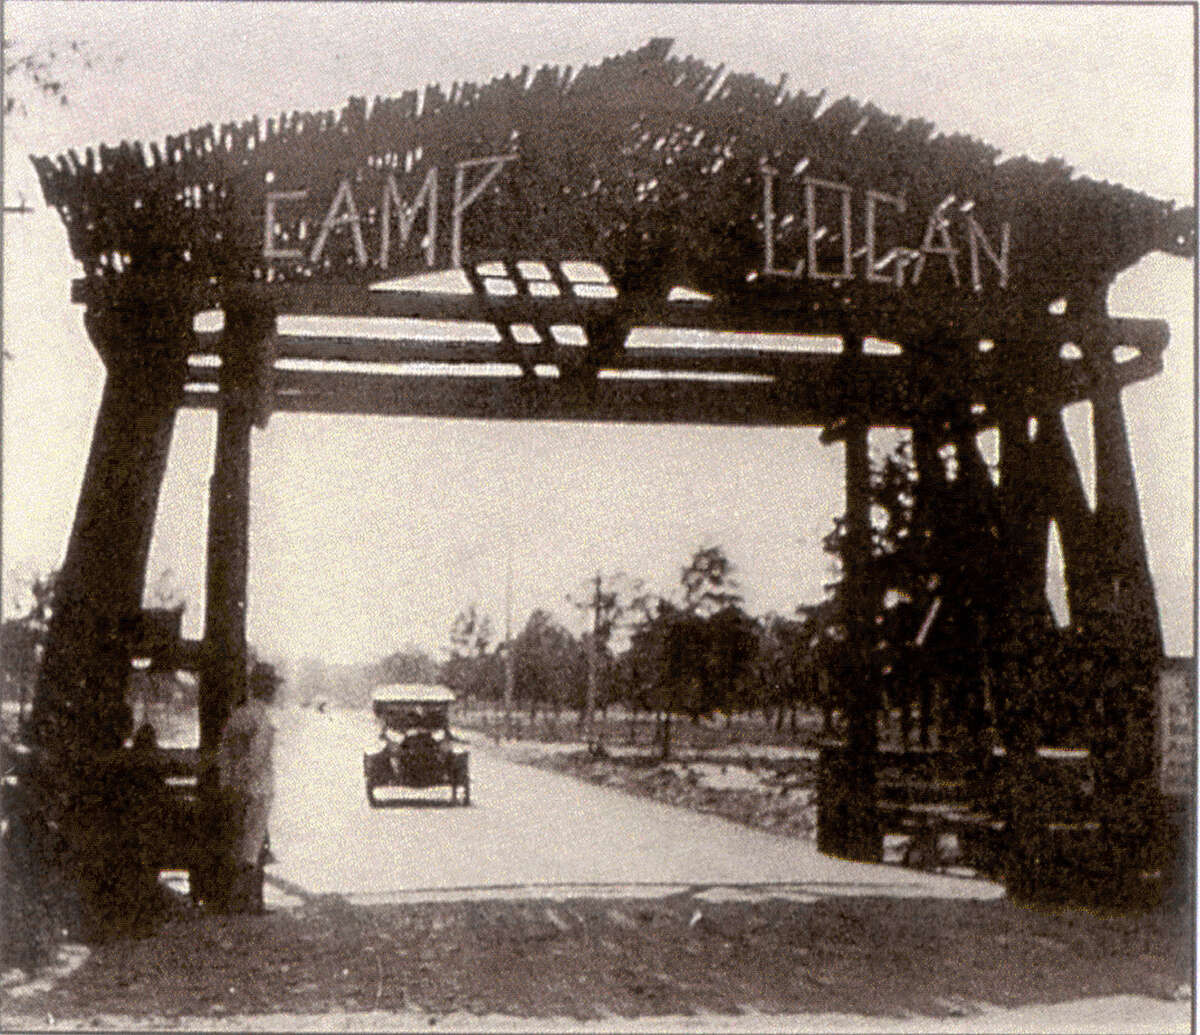 Aug. 23, 1917 : Camp Logan Riot Details: A confrontation between white police officers and black soldiers from newly established Camp Logan left 20 people dead. Although it happened in Houston, it's identified with the Army base set up to prepare for World War I. Part of the camp became Memorial Park.